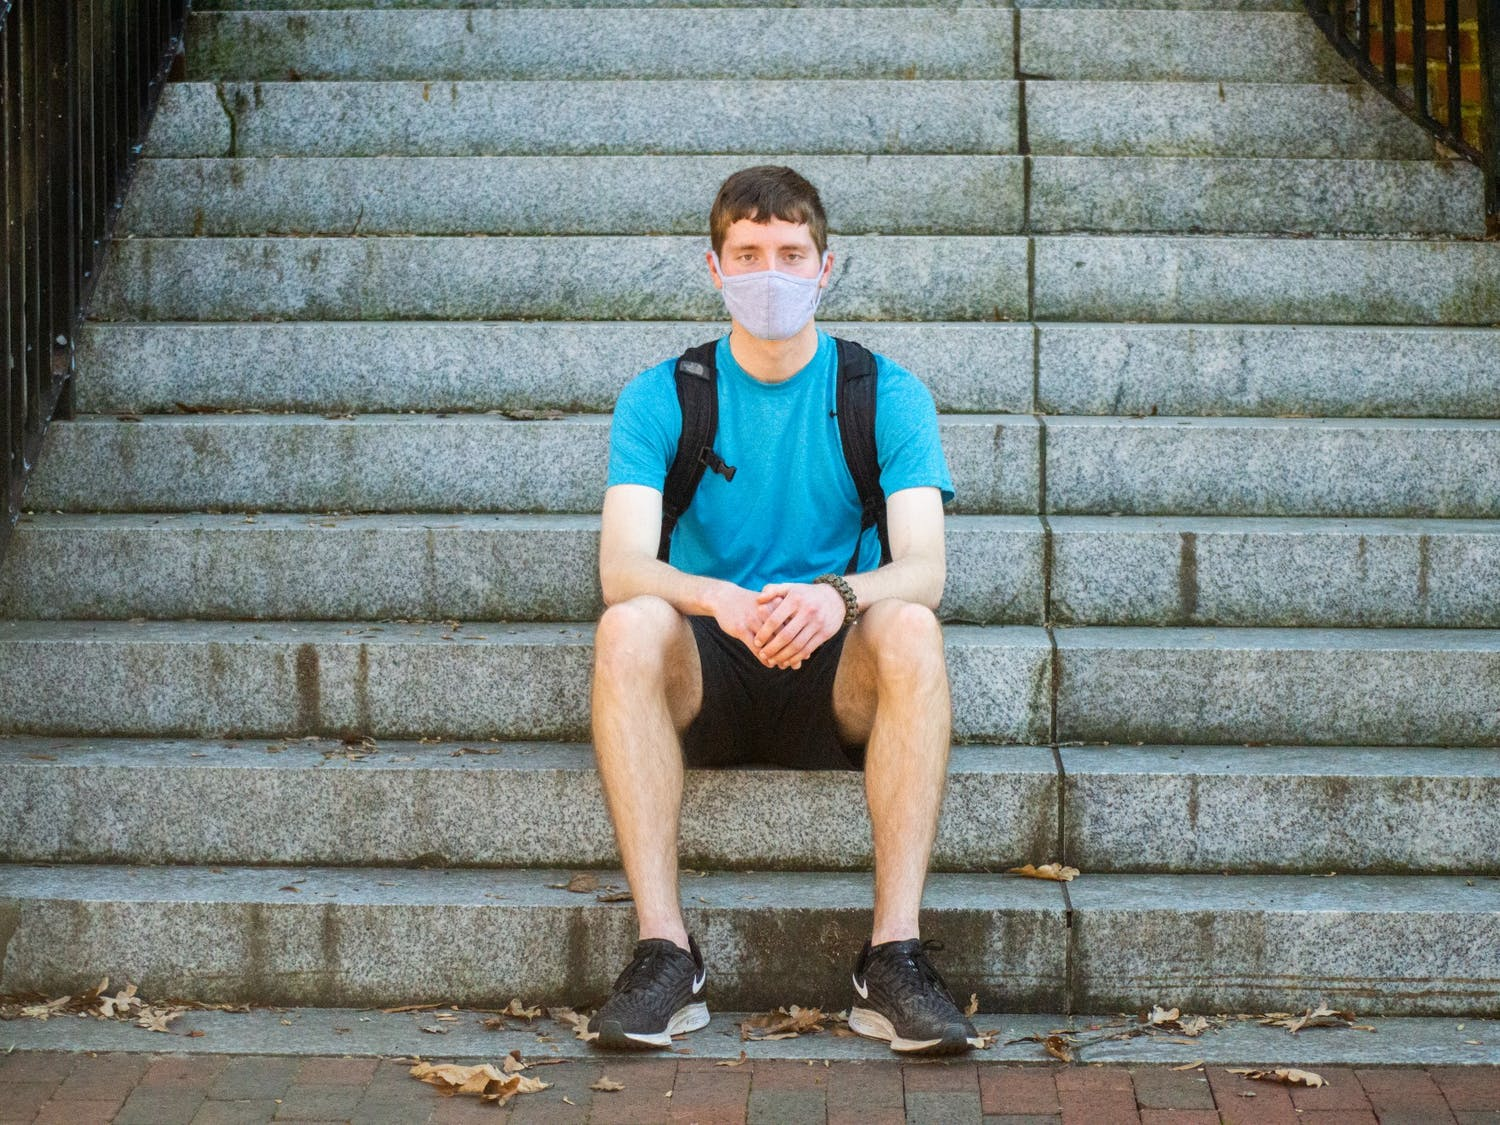 Jason Kennedy, a first year computer science major, poses on the steps of Murphey on Thursday Mar. 11 2021.